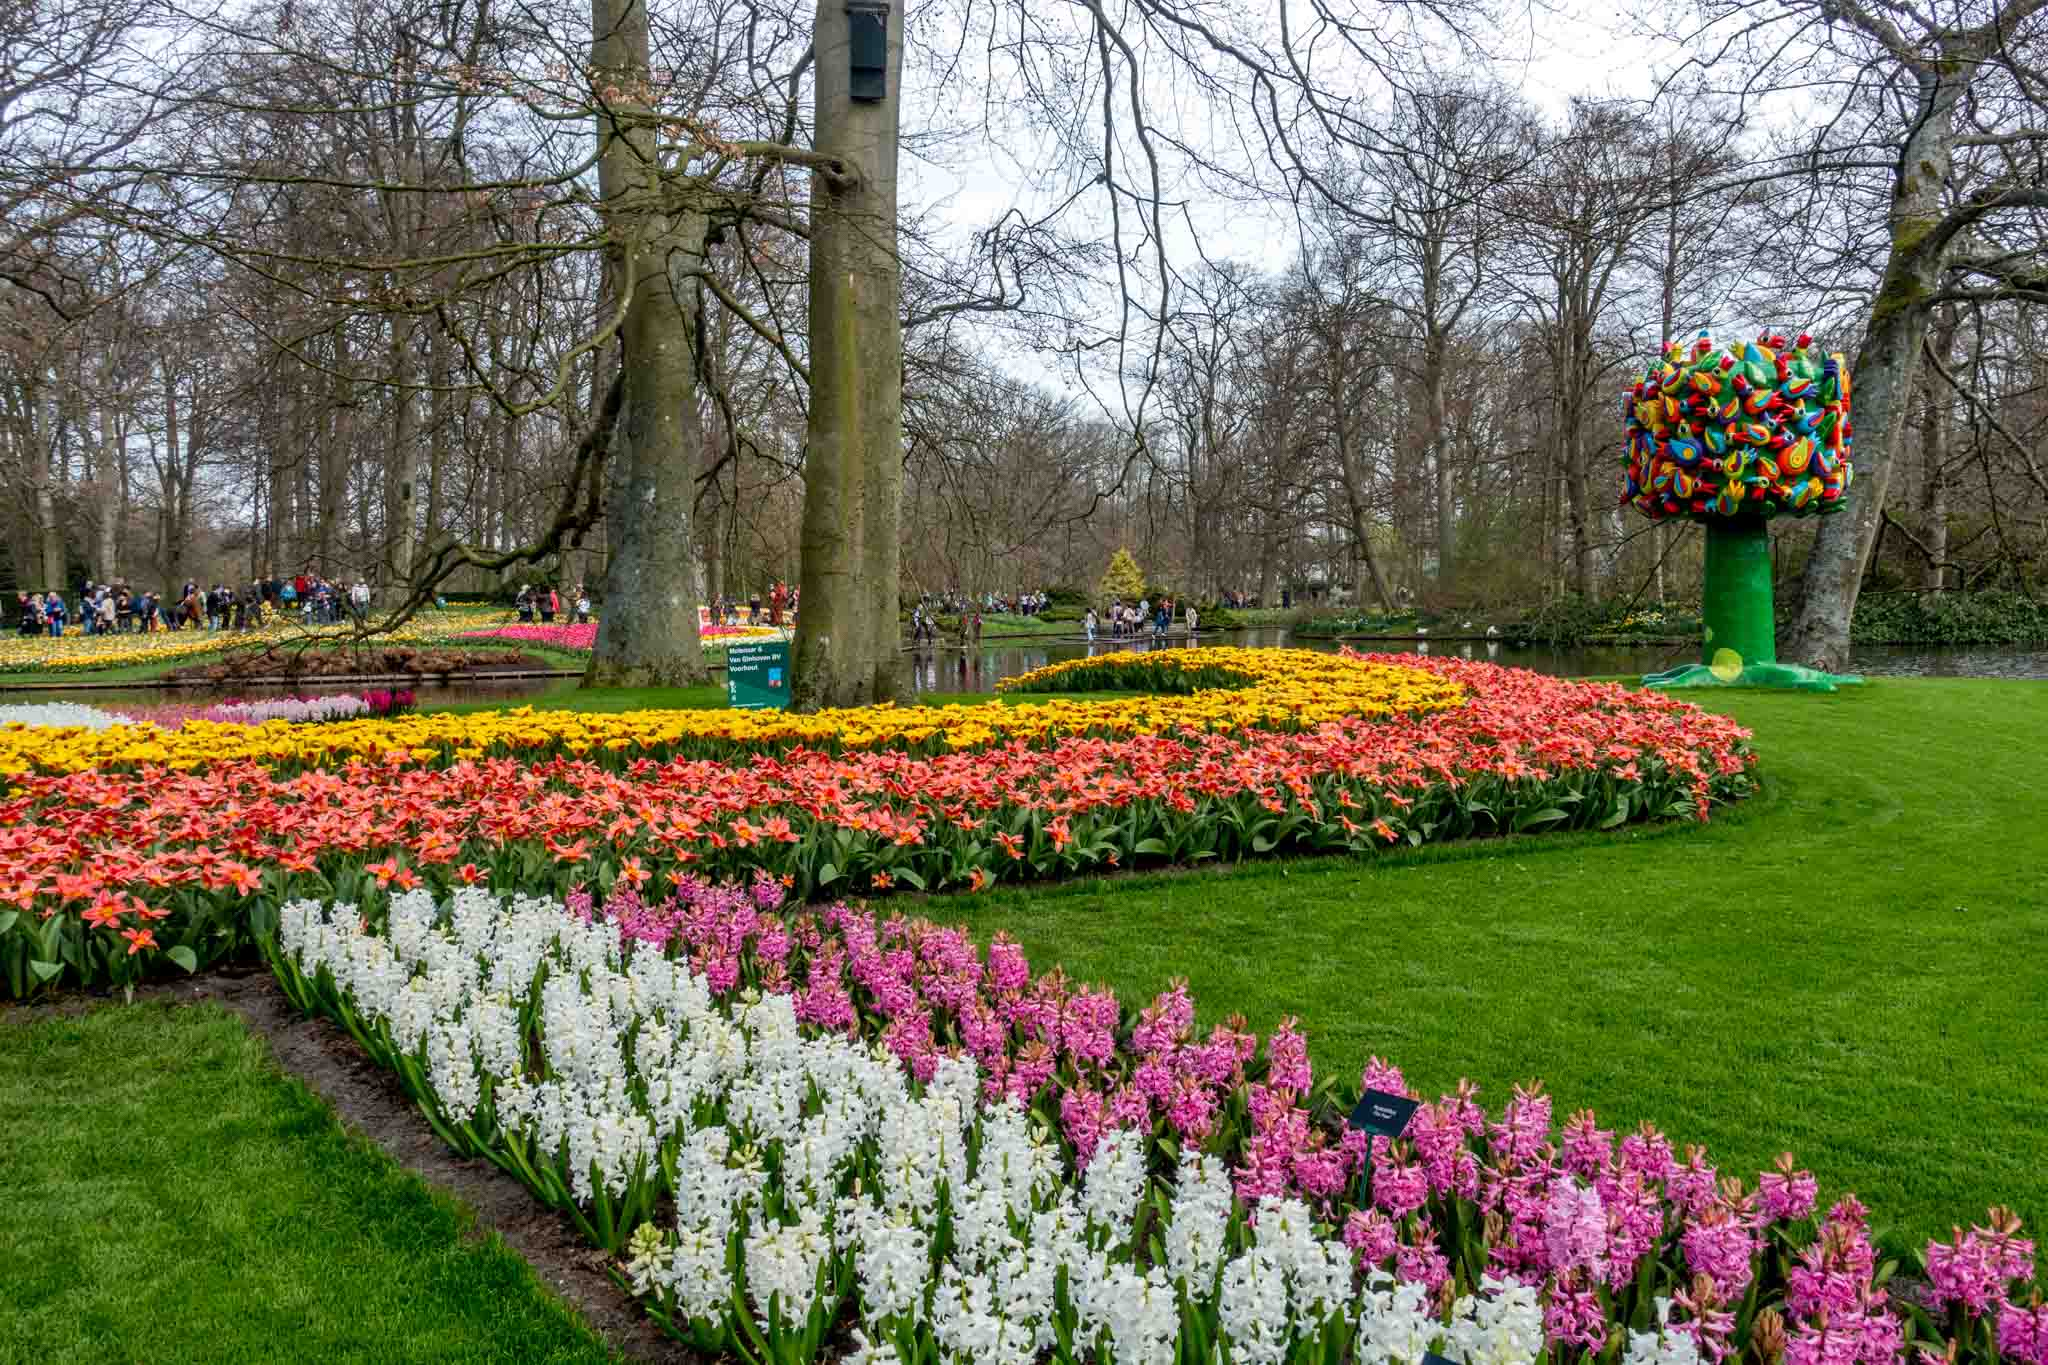 Colorful sculpture beside rows of bright flowers at Keukenhof